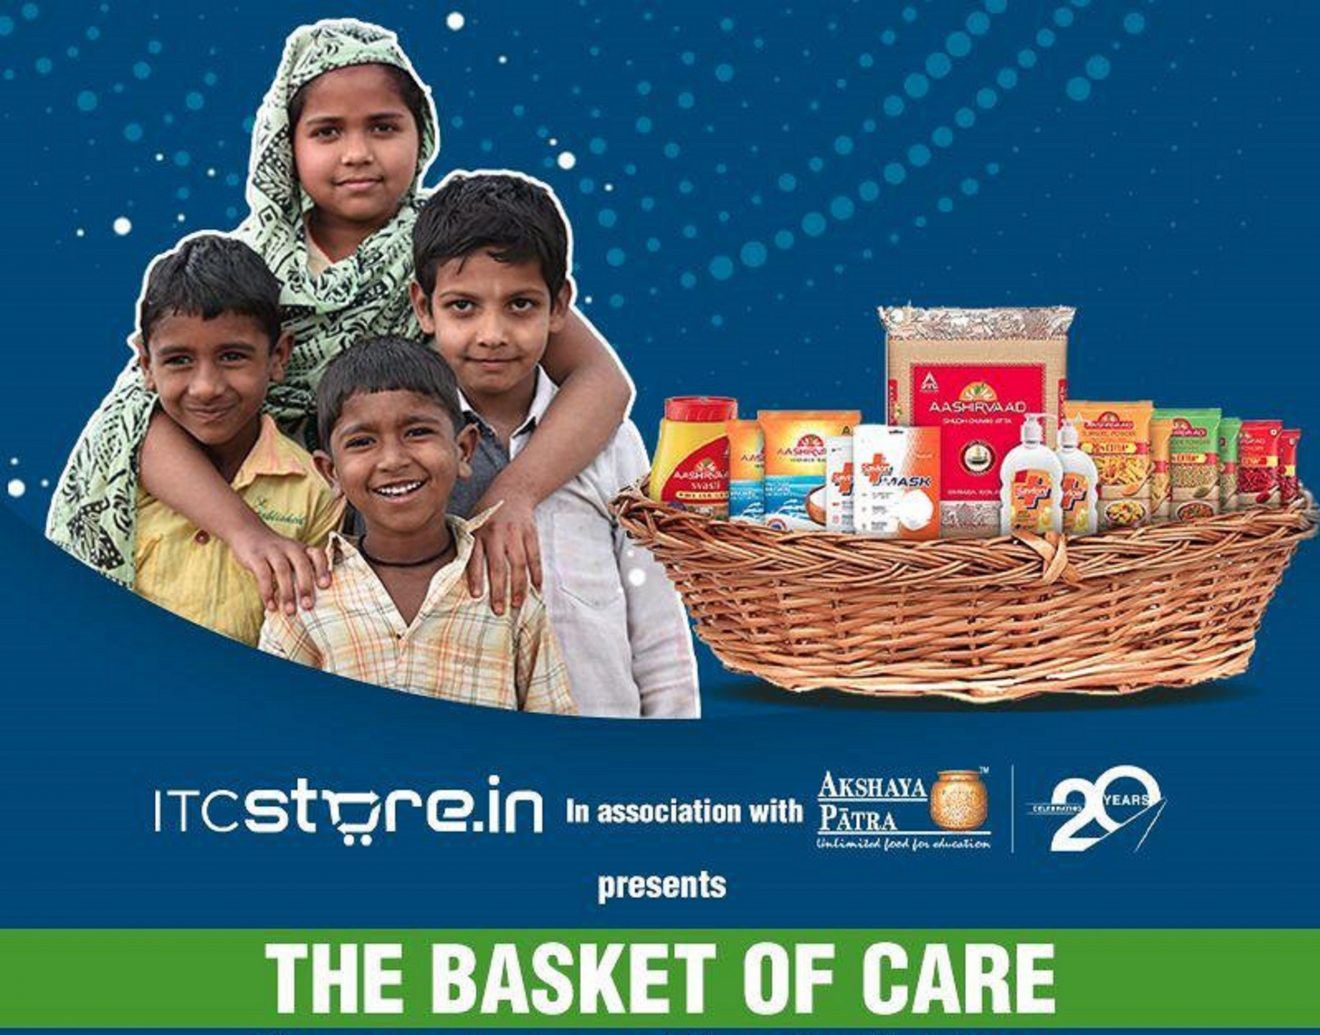 ITC store and Akshay Patra urge citizens of India to come forward and support those impacted by the pandemic